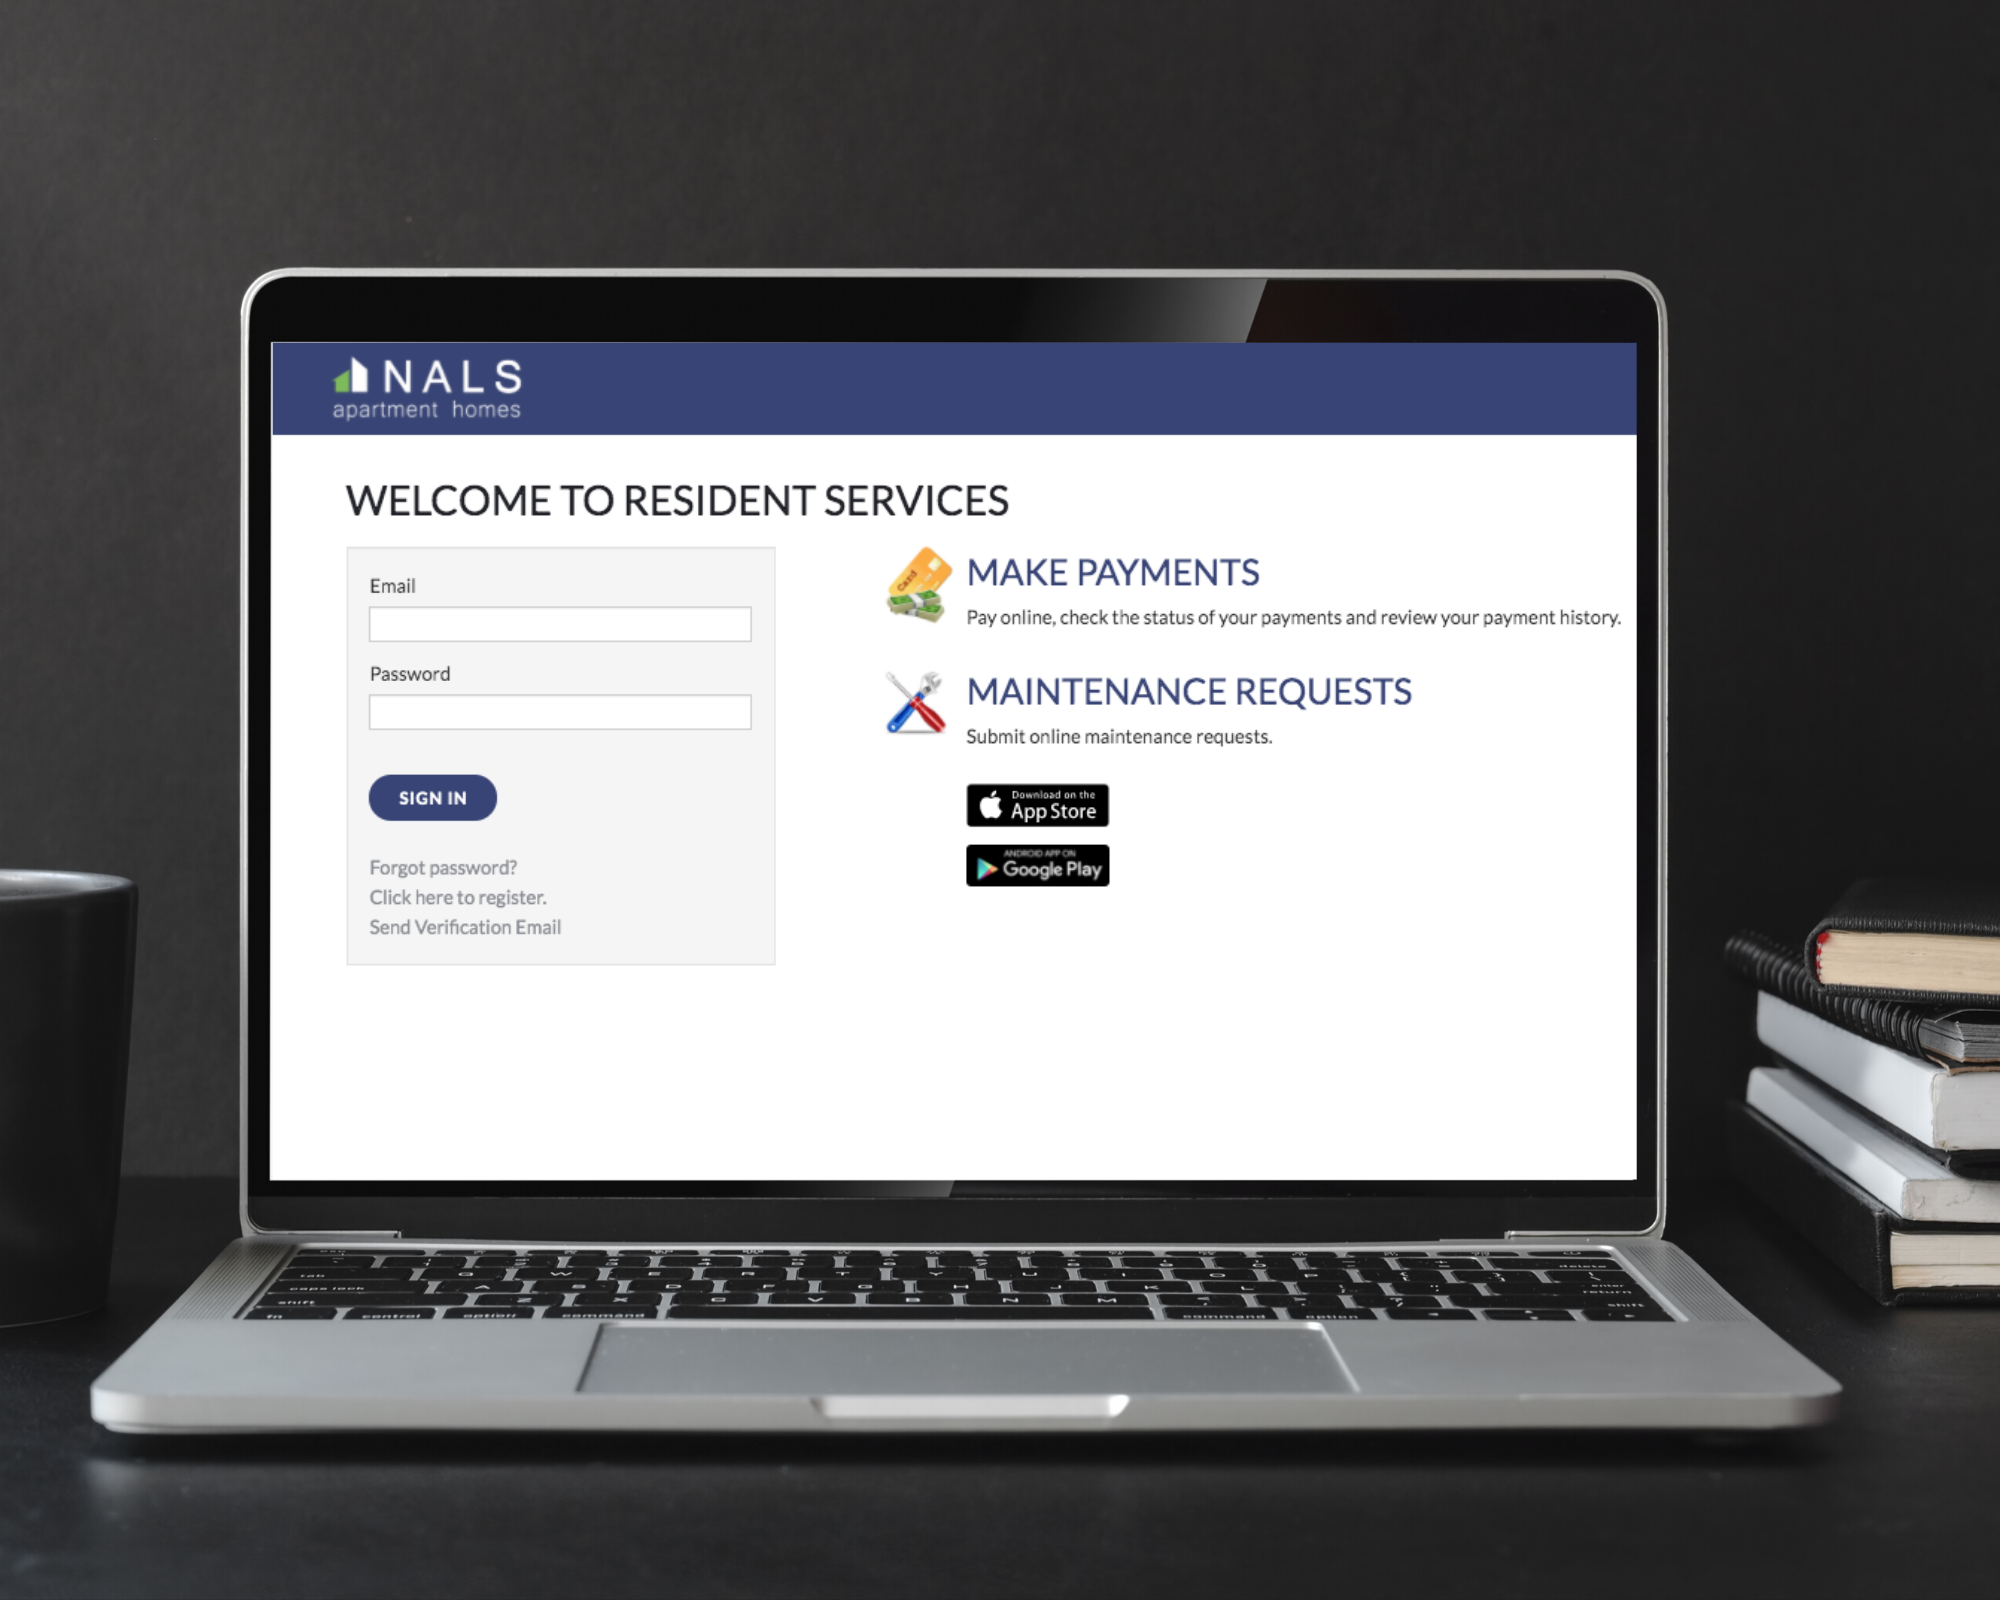 NALS Apartments Online Resident Services